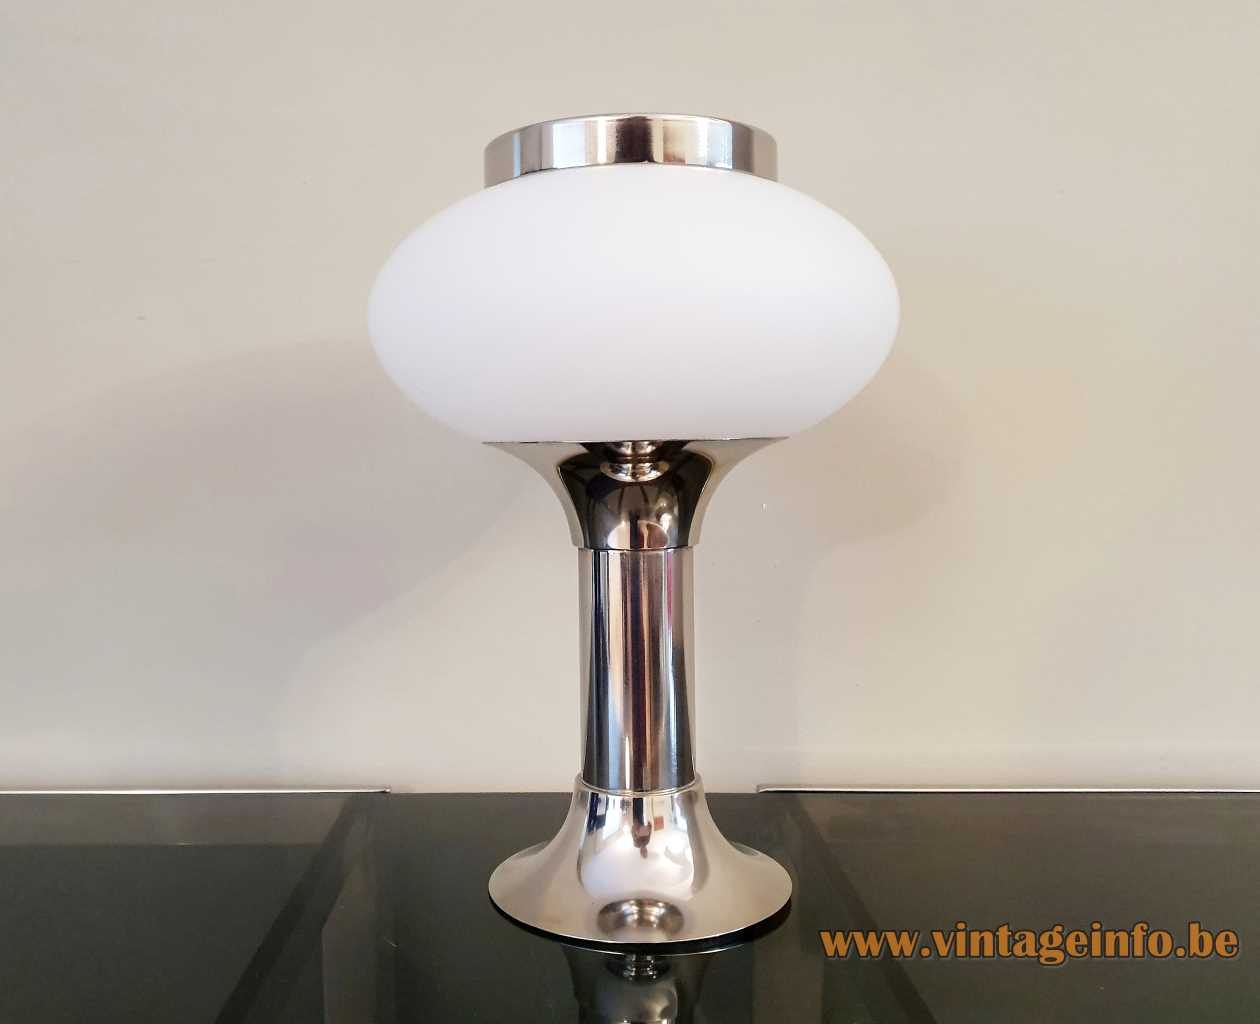 VEB NARVA chrome opal glass table lamp tubular base globe lampshade GDR East Germany 1960s 1970s